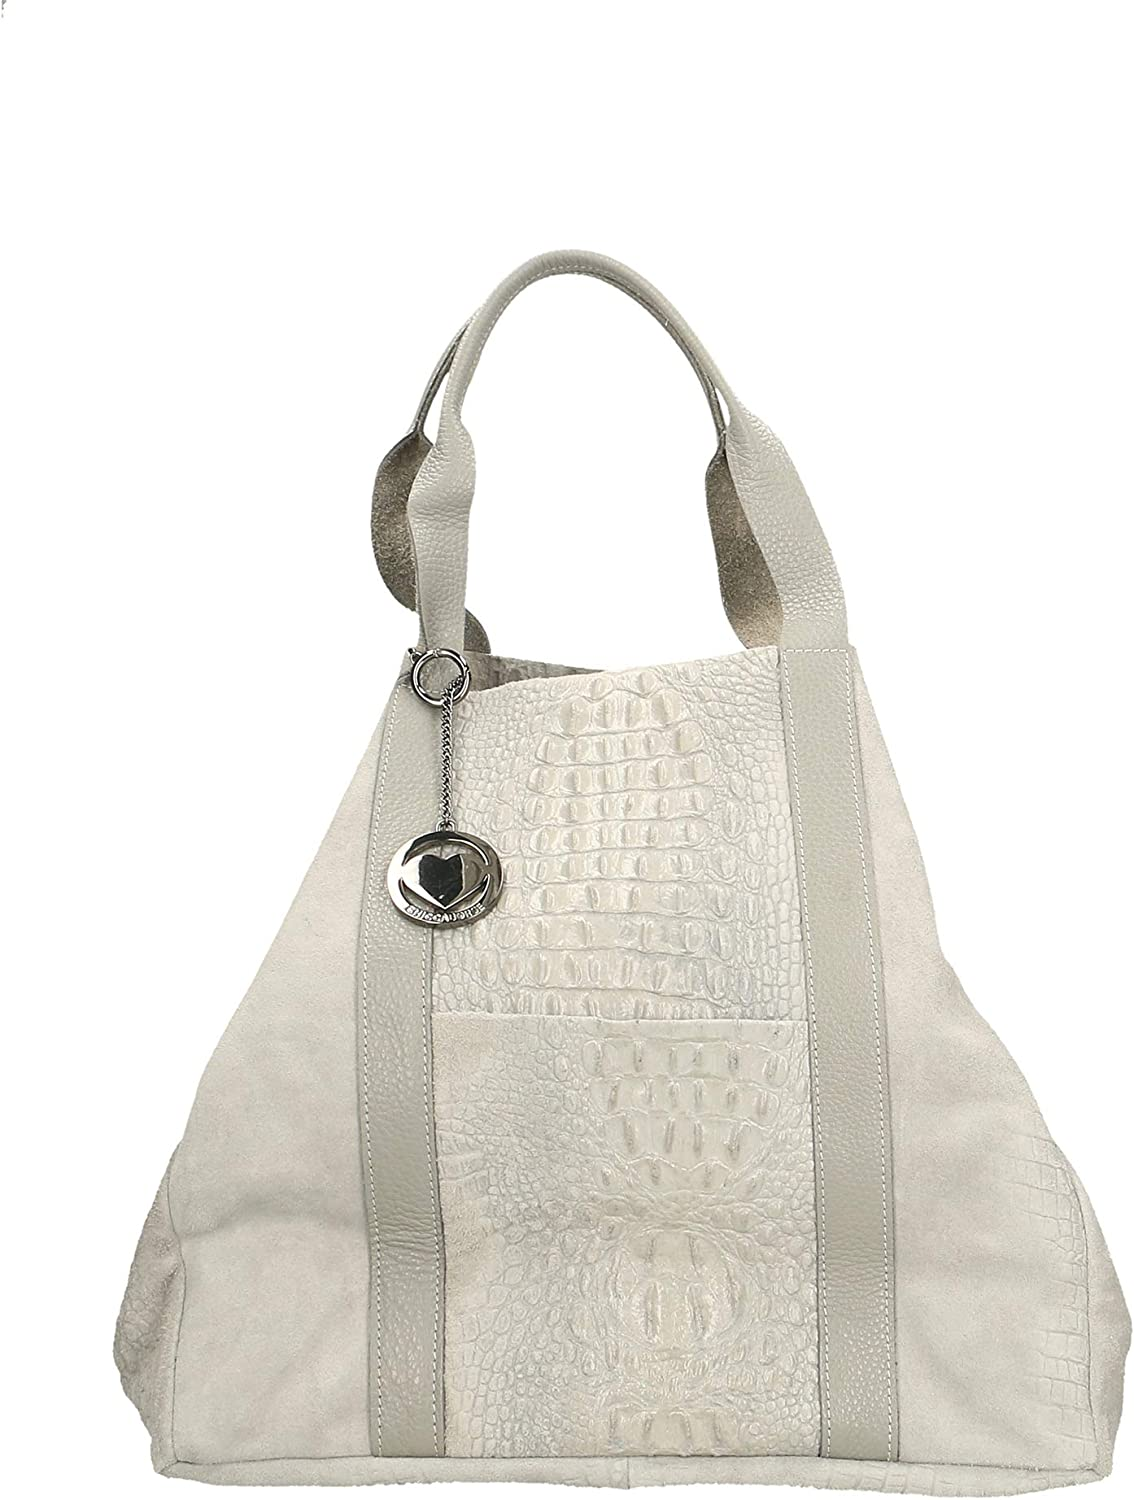 Chicca Borse Bolso en piel genuina made in Italy 63x36x21 cm Gris